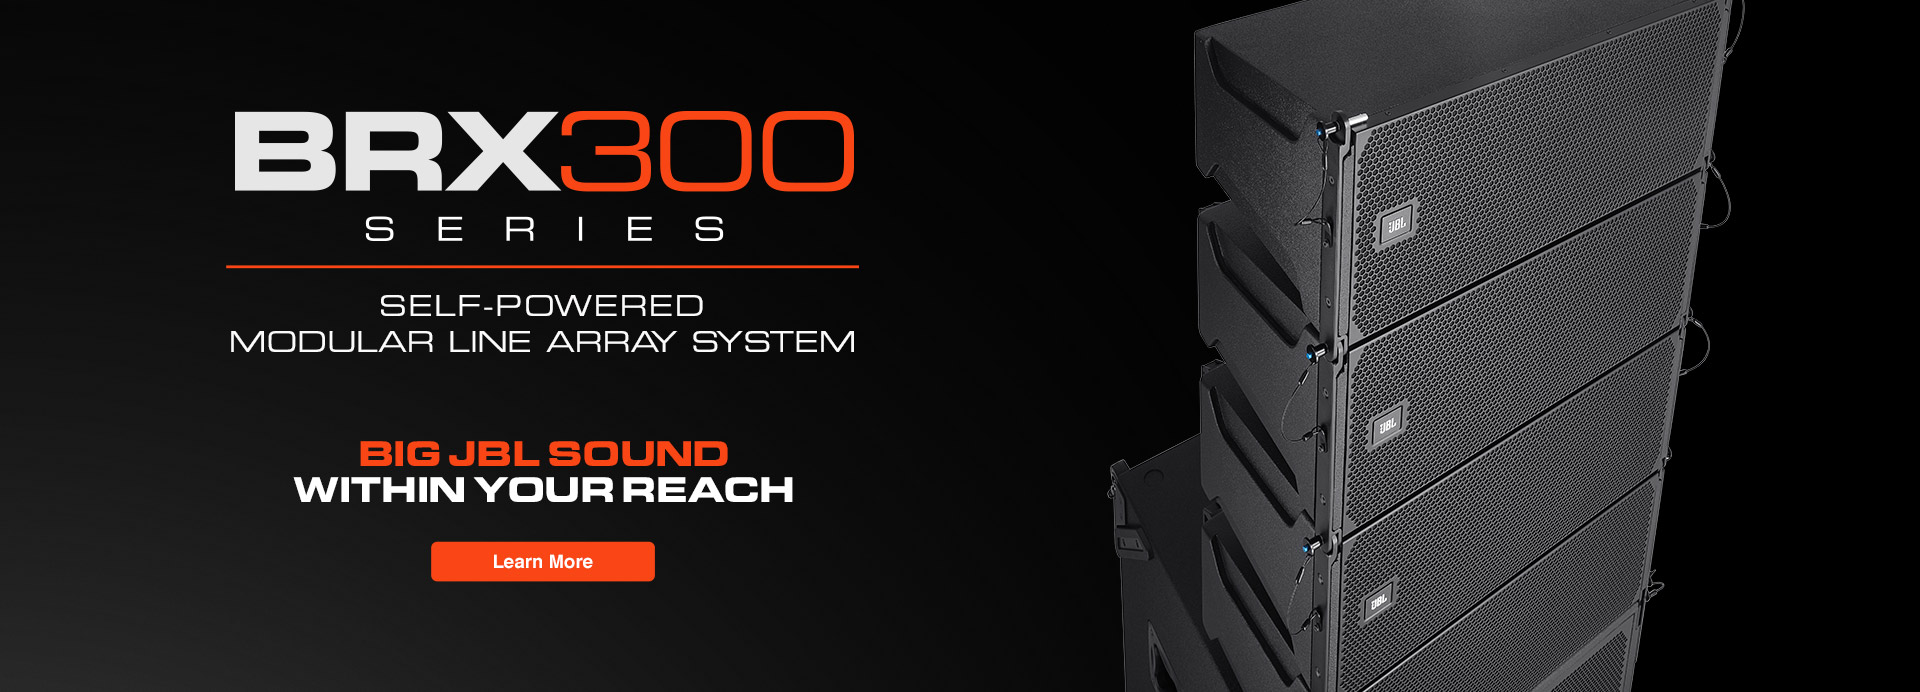 BRX300 Series Launch